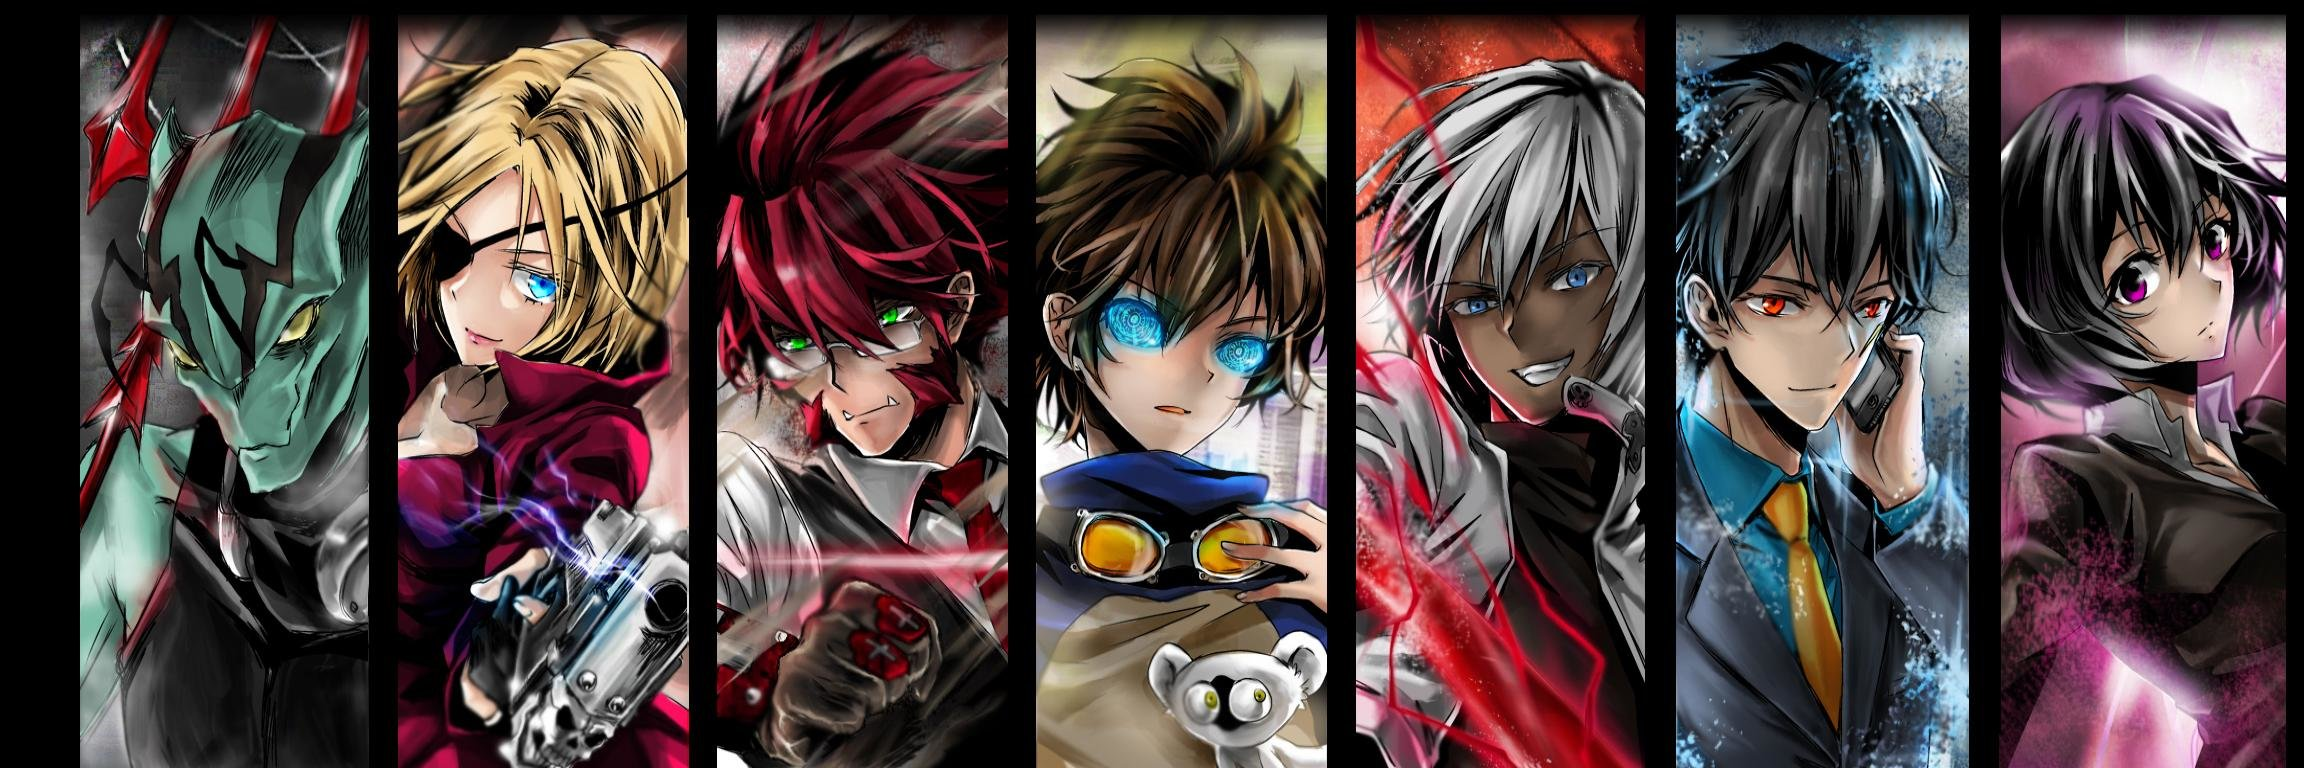 Download dual monitor 2304x768 Blood Blockade Battlefront desktop background ID:342449 for free